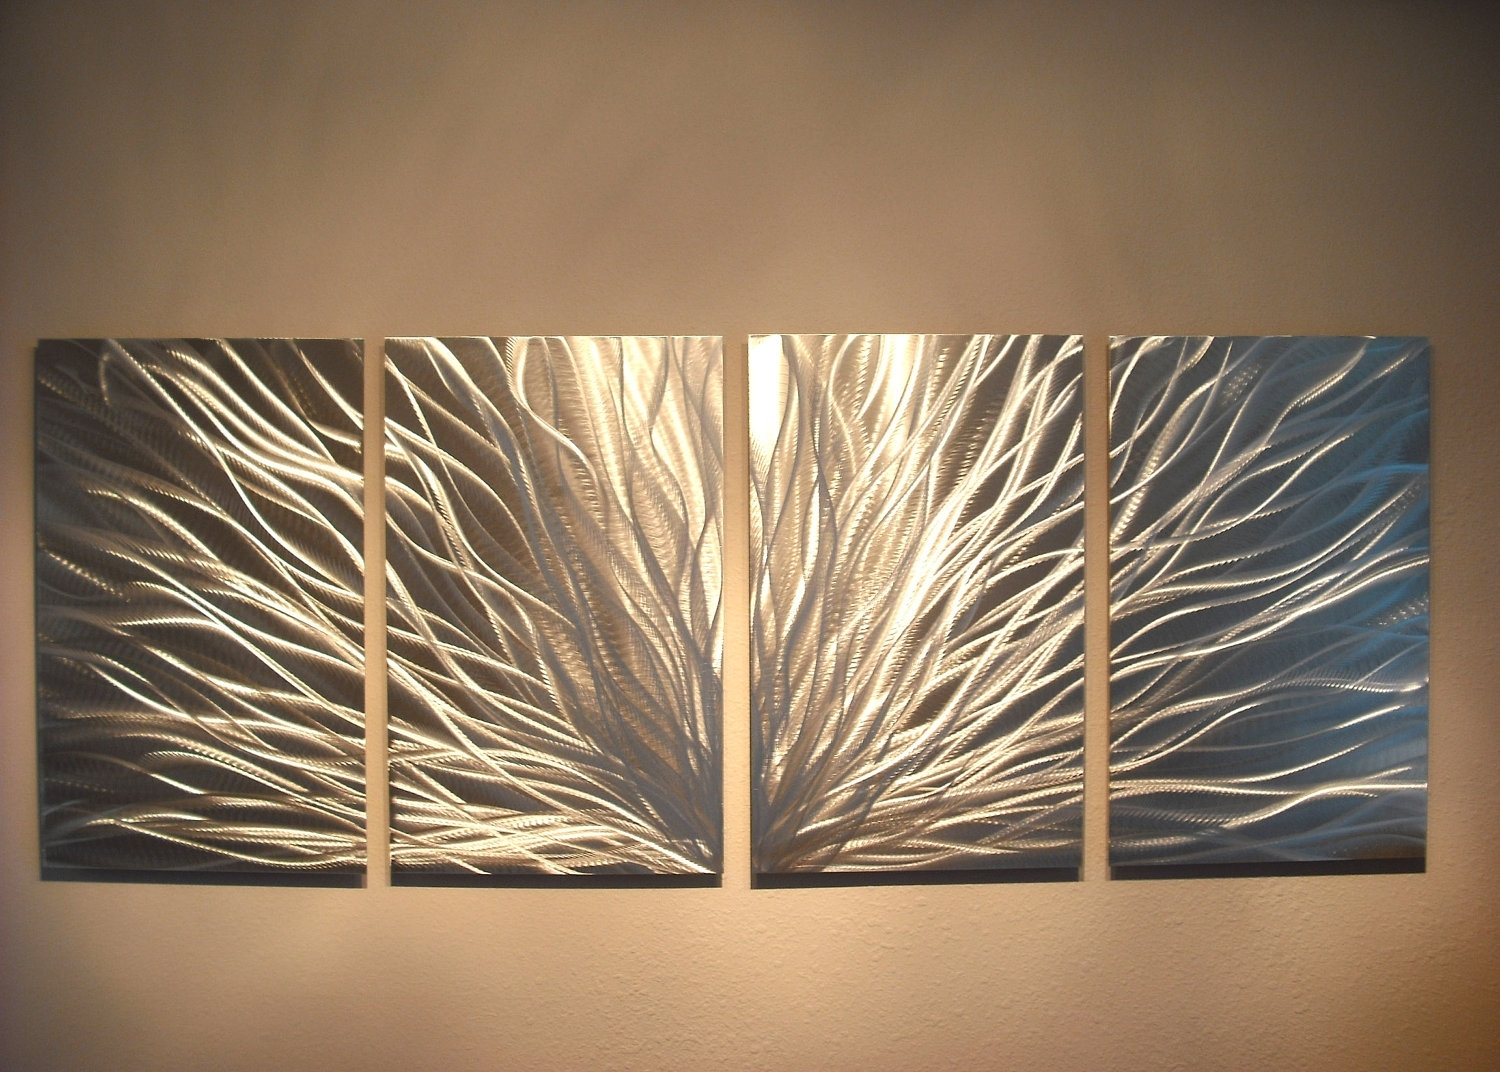 Radiance – Abstract Metal Wall Art Contemporary Modern Decor With Regard To Most Popular Inexpensive Abstract Metal Wall Art (View 2 of 20)